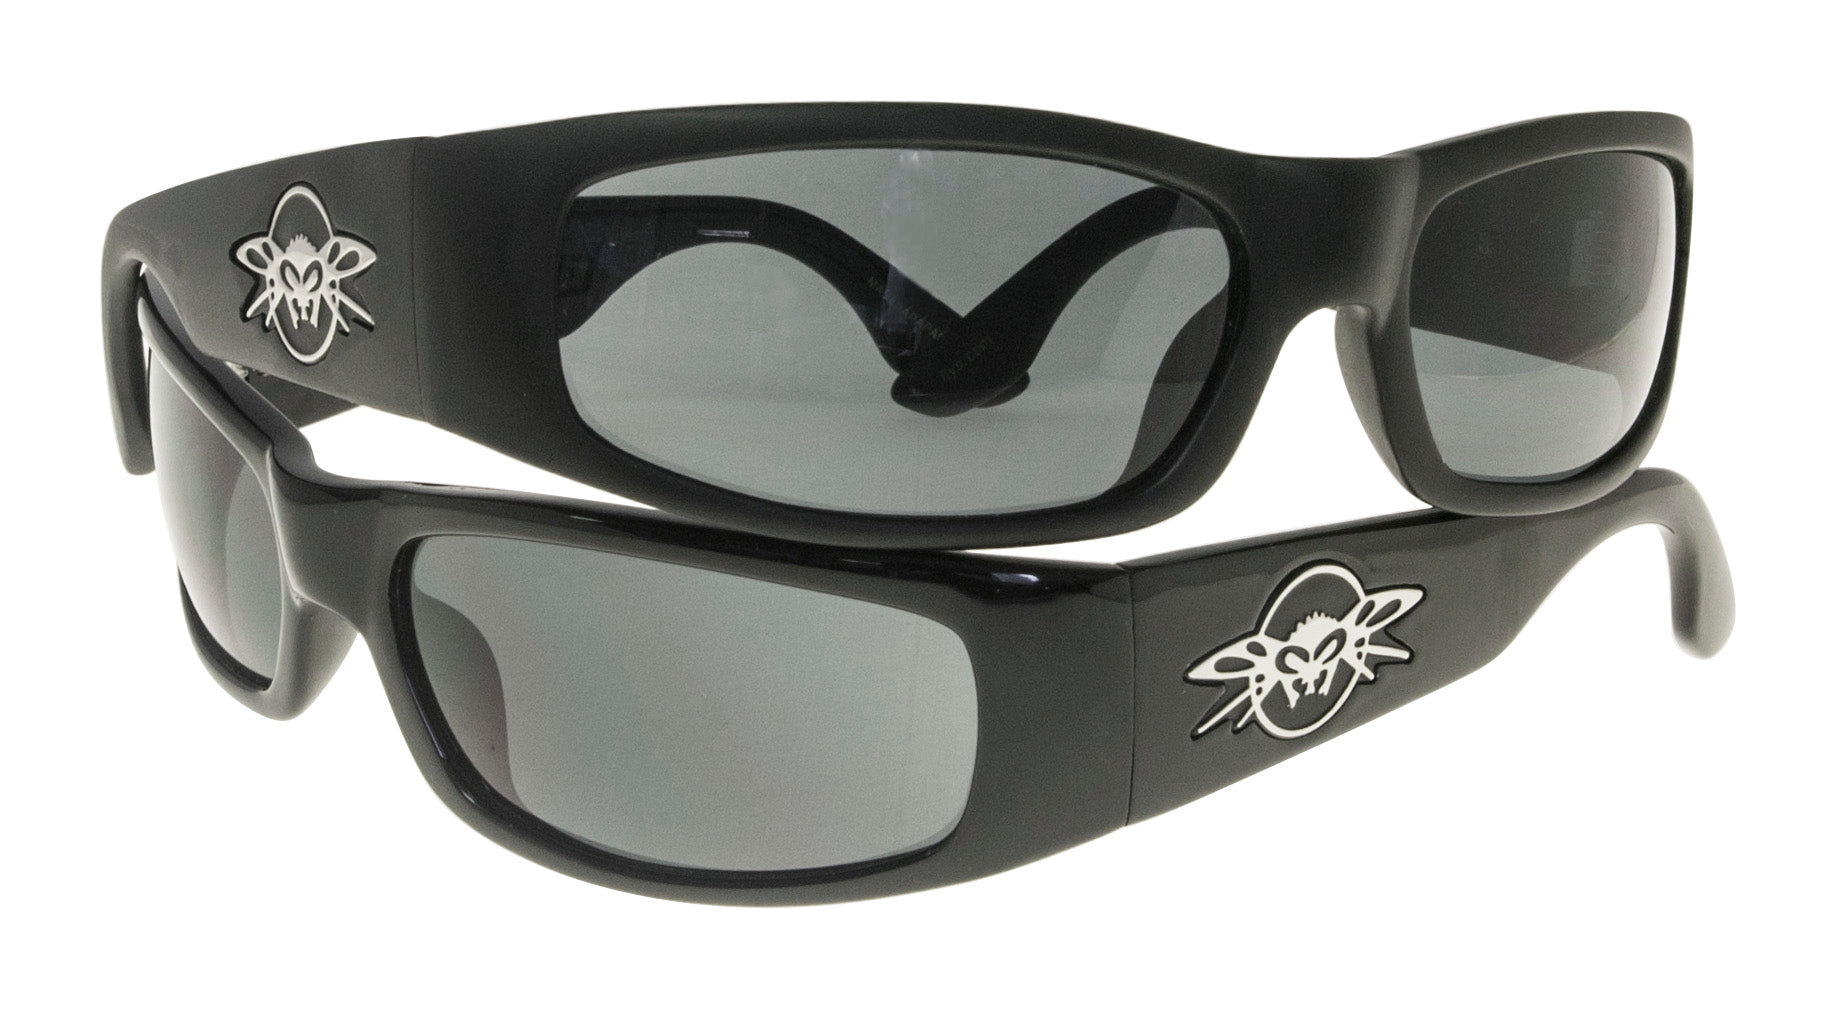 Sonic Fly Polarized